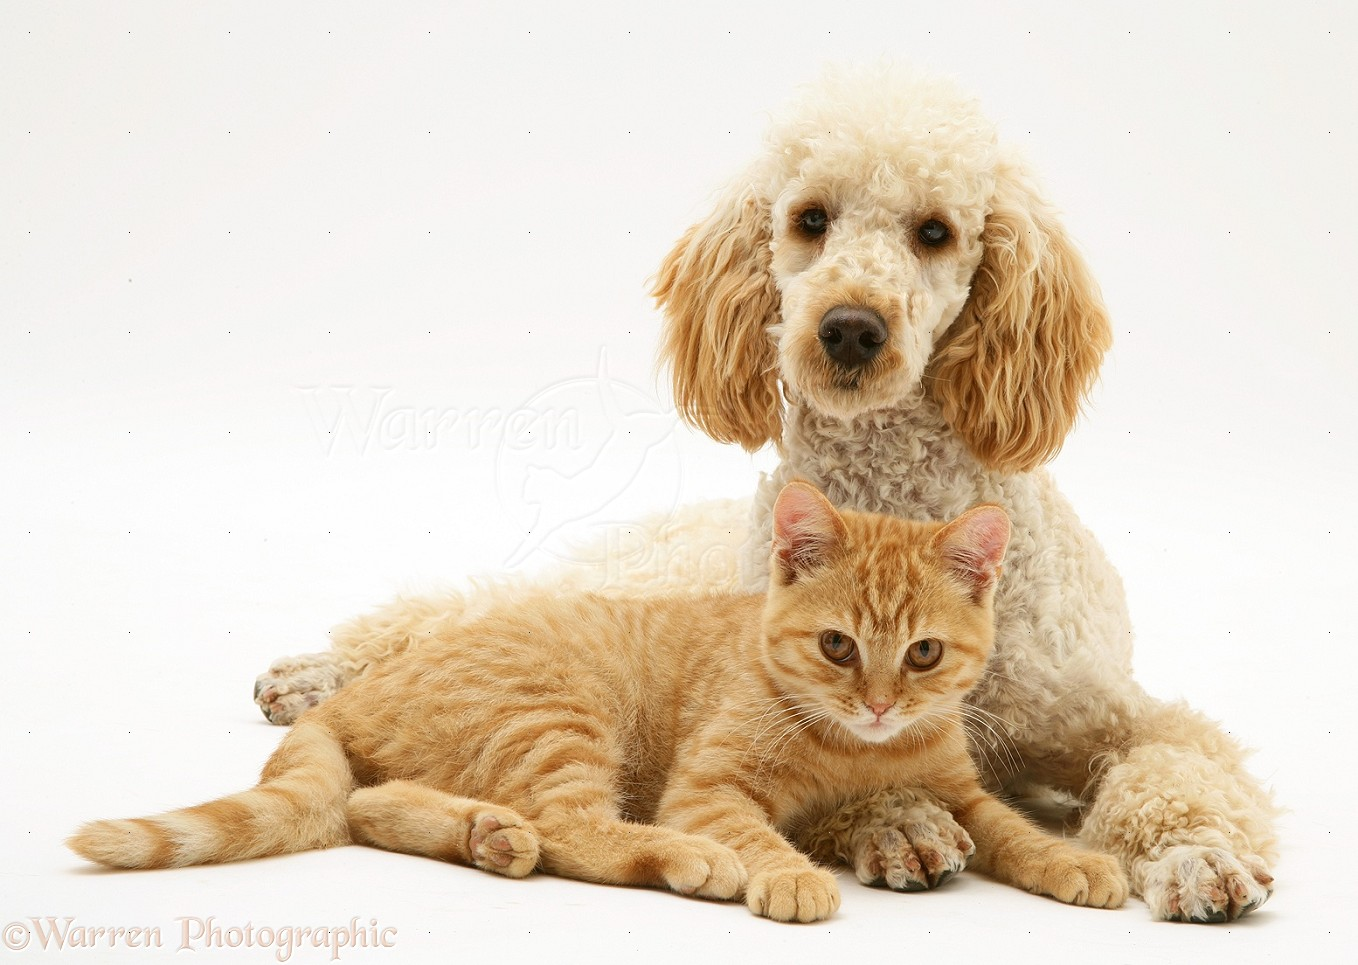 Apricot poodle murphy with ginger cat